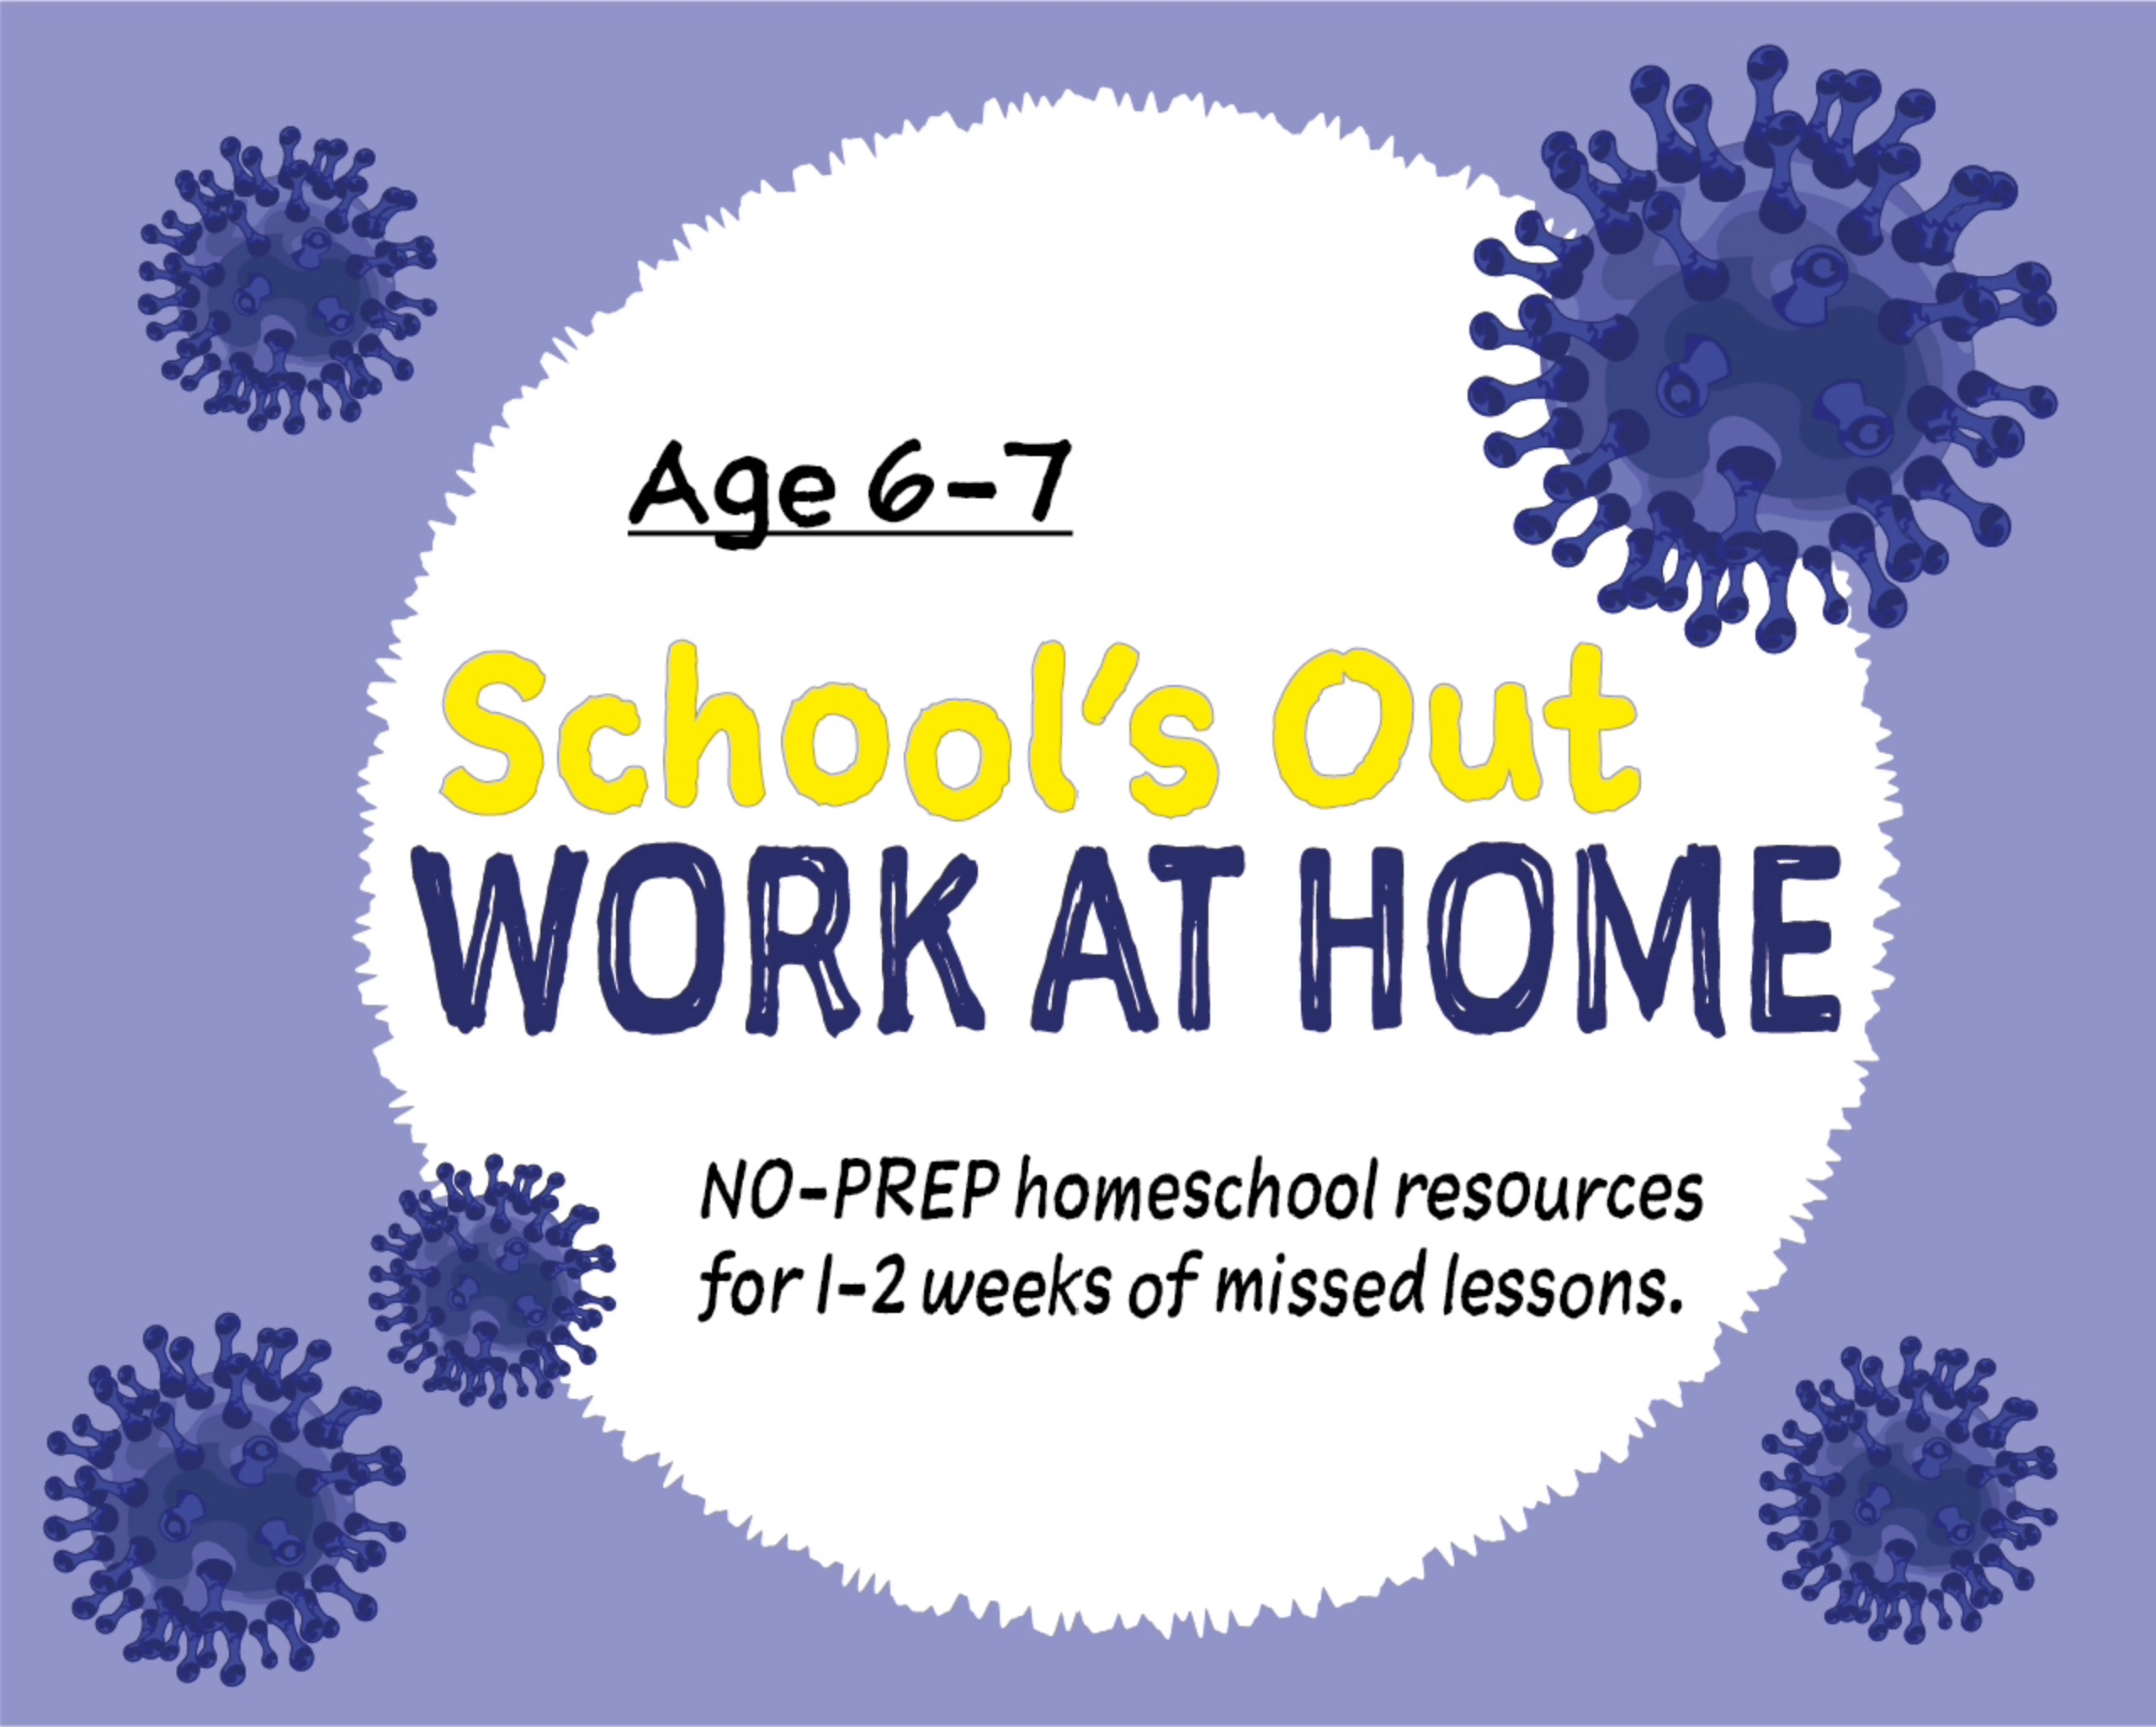 Schools Out For Coronavirus! Prepare For Schooling At Home (age 6-7 years) (year 2) (grade 1)